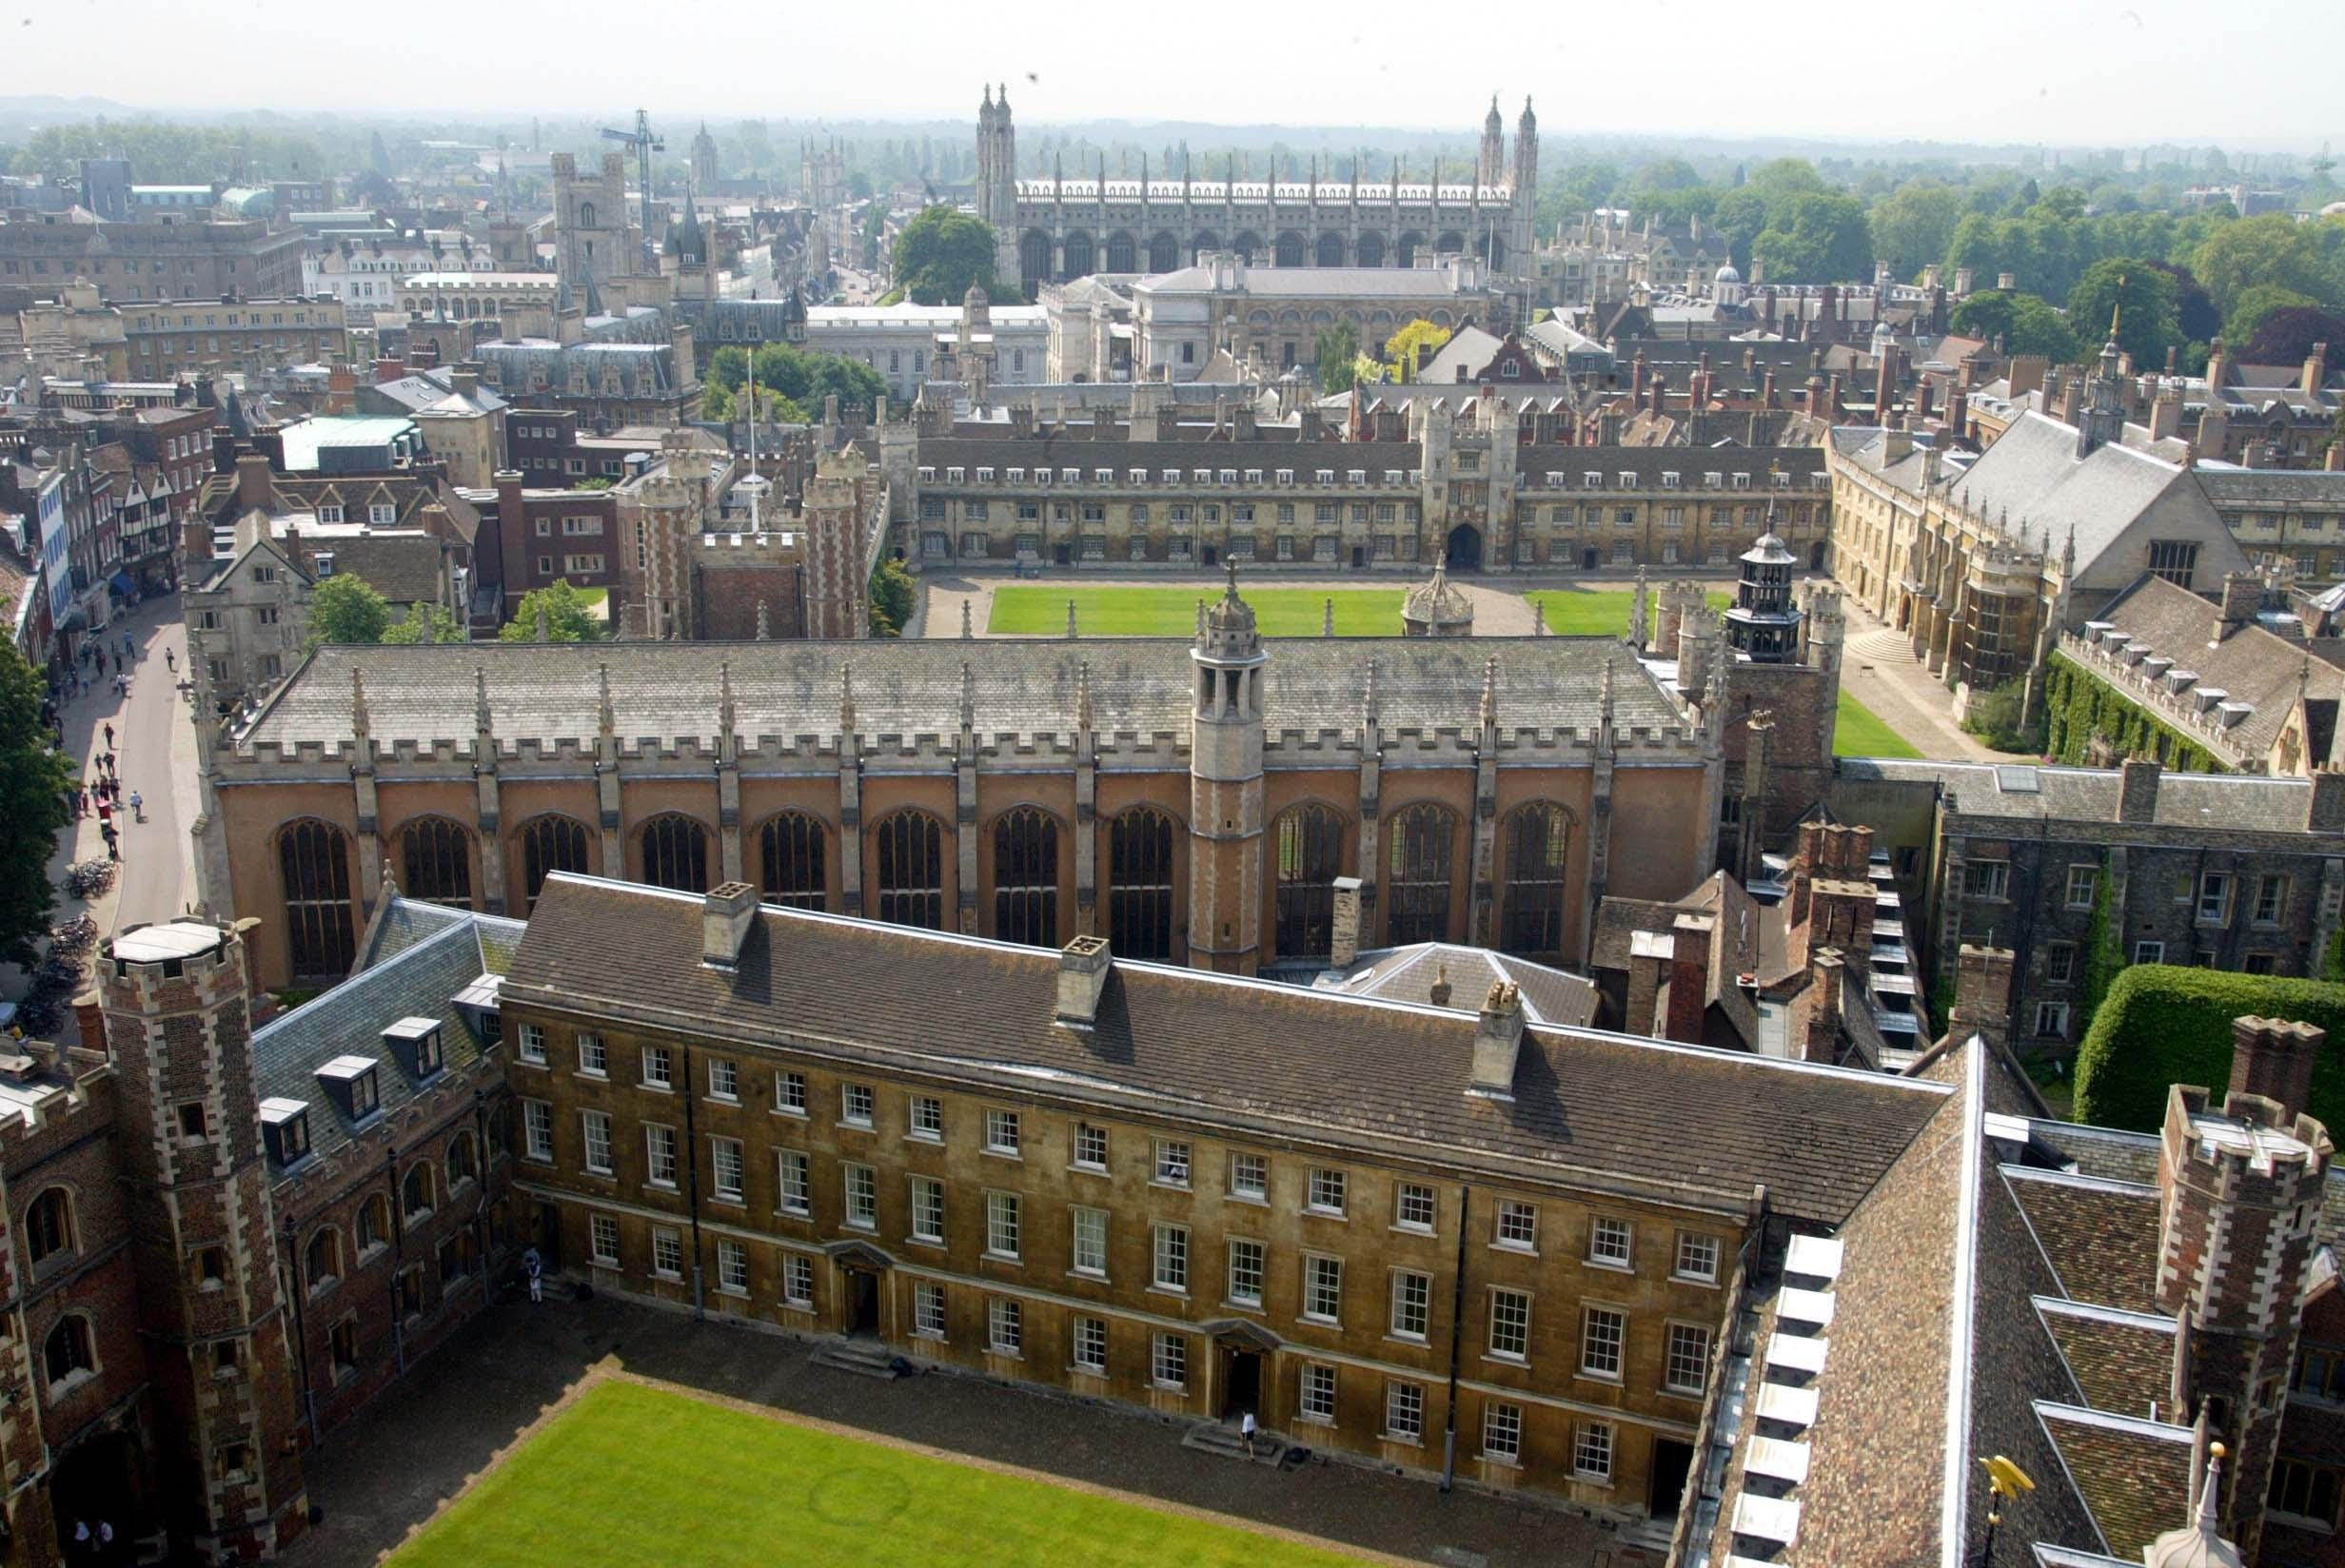 Aerial View of Cambridge city centre taken from St. John's College.